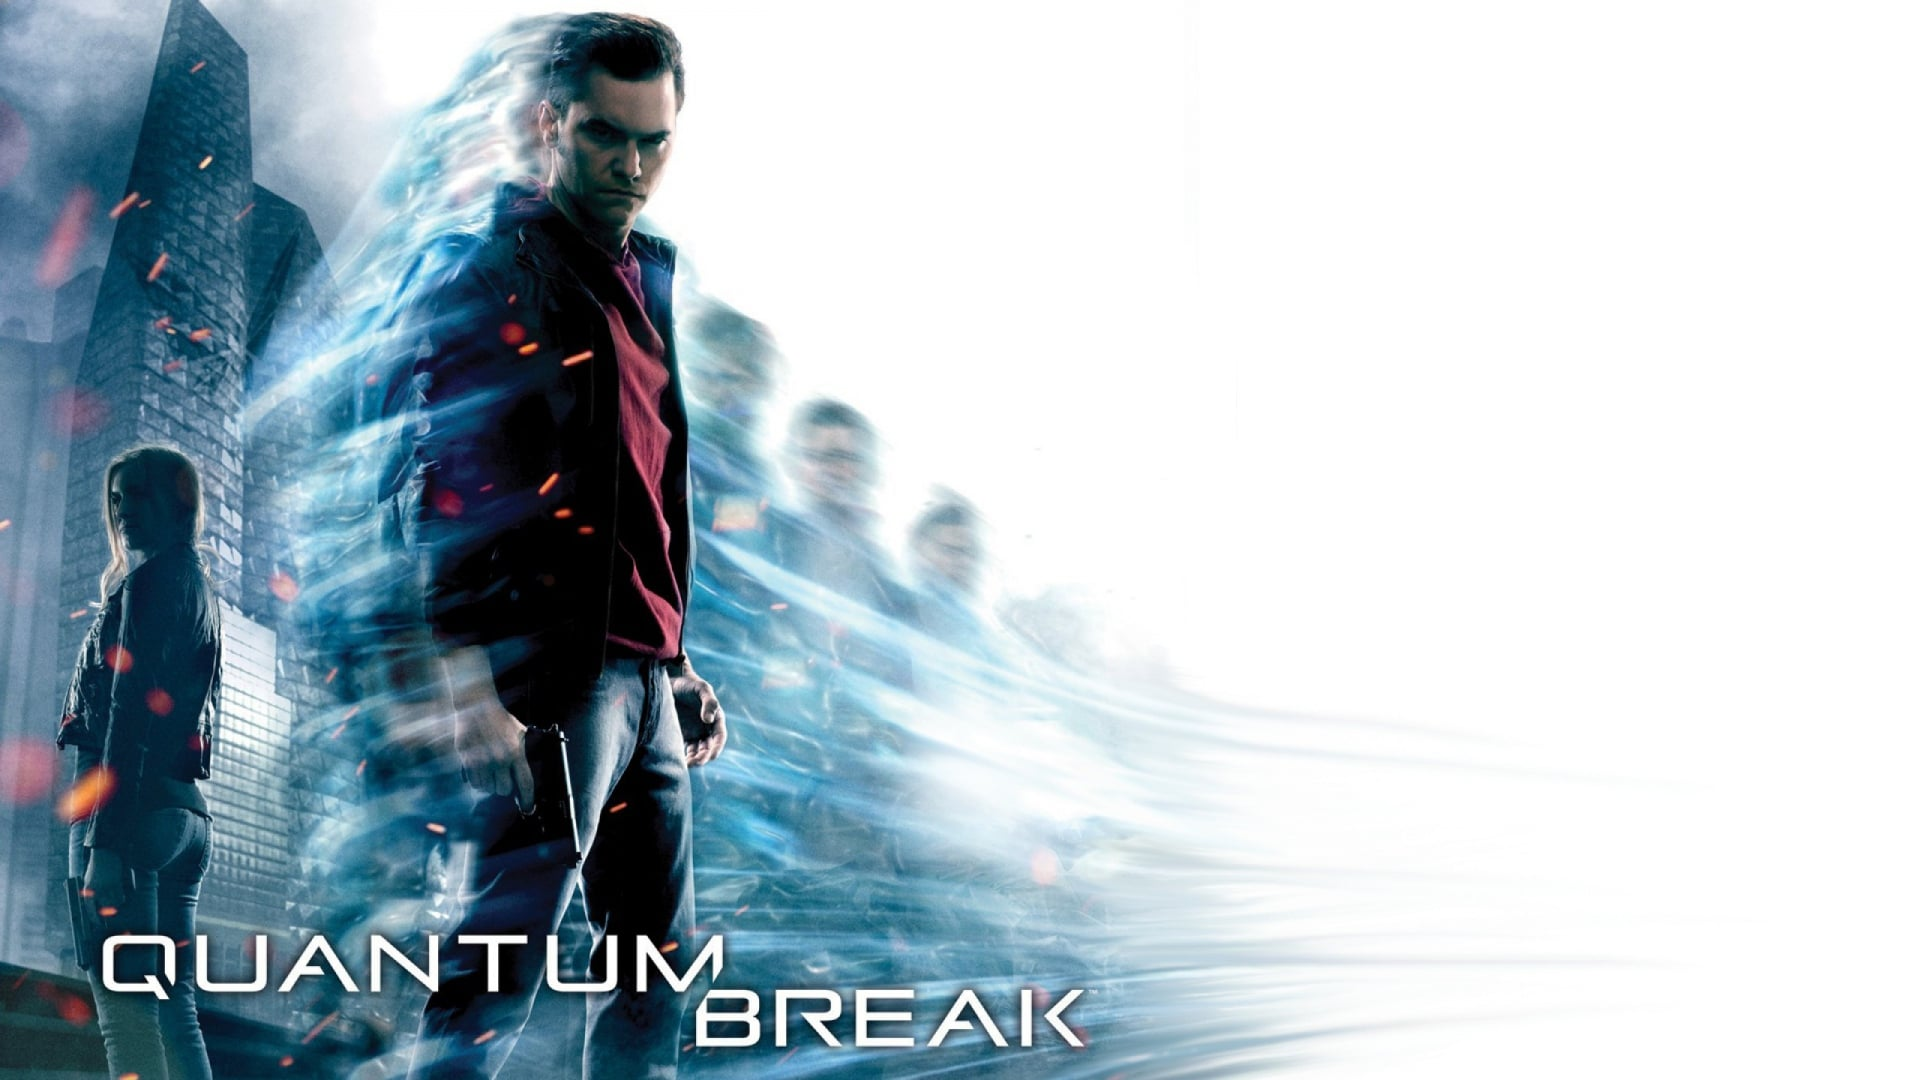 Amazing Quantum Break picture